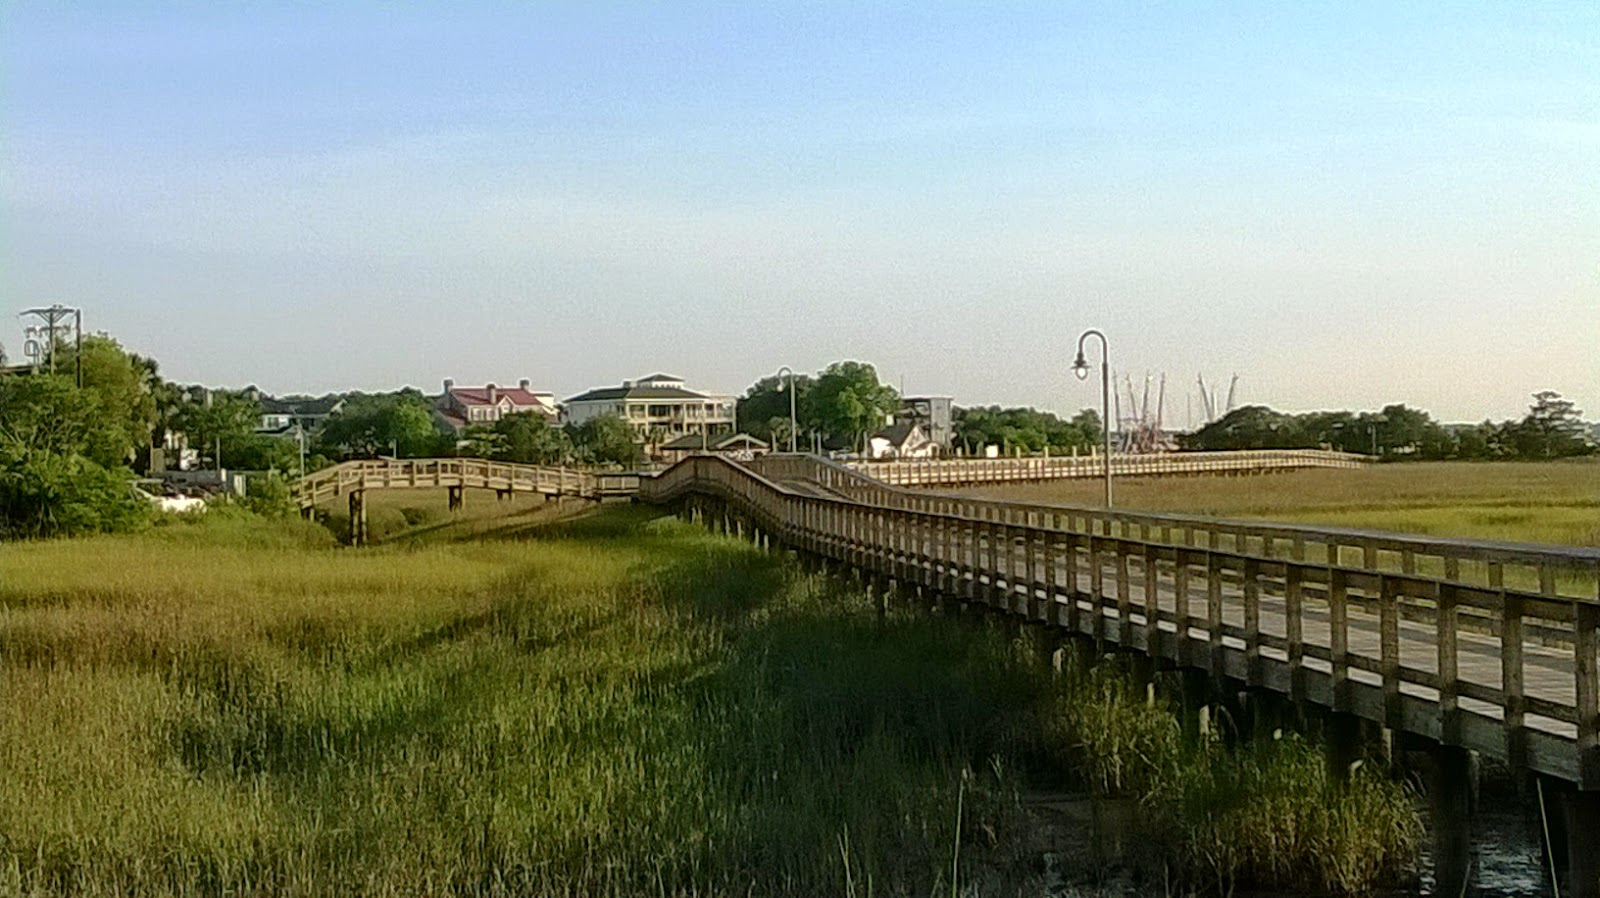 Shem Creek Park, Mount Pleasant, South Carolina